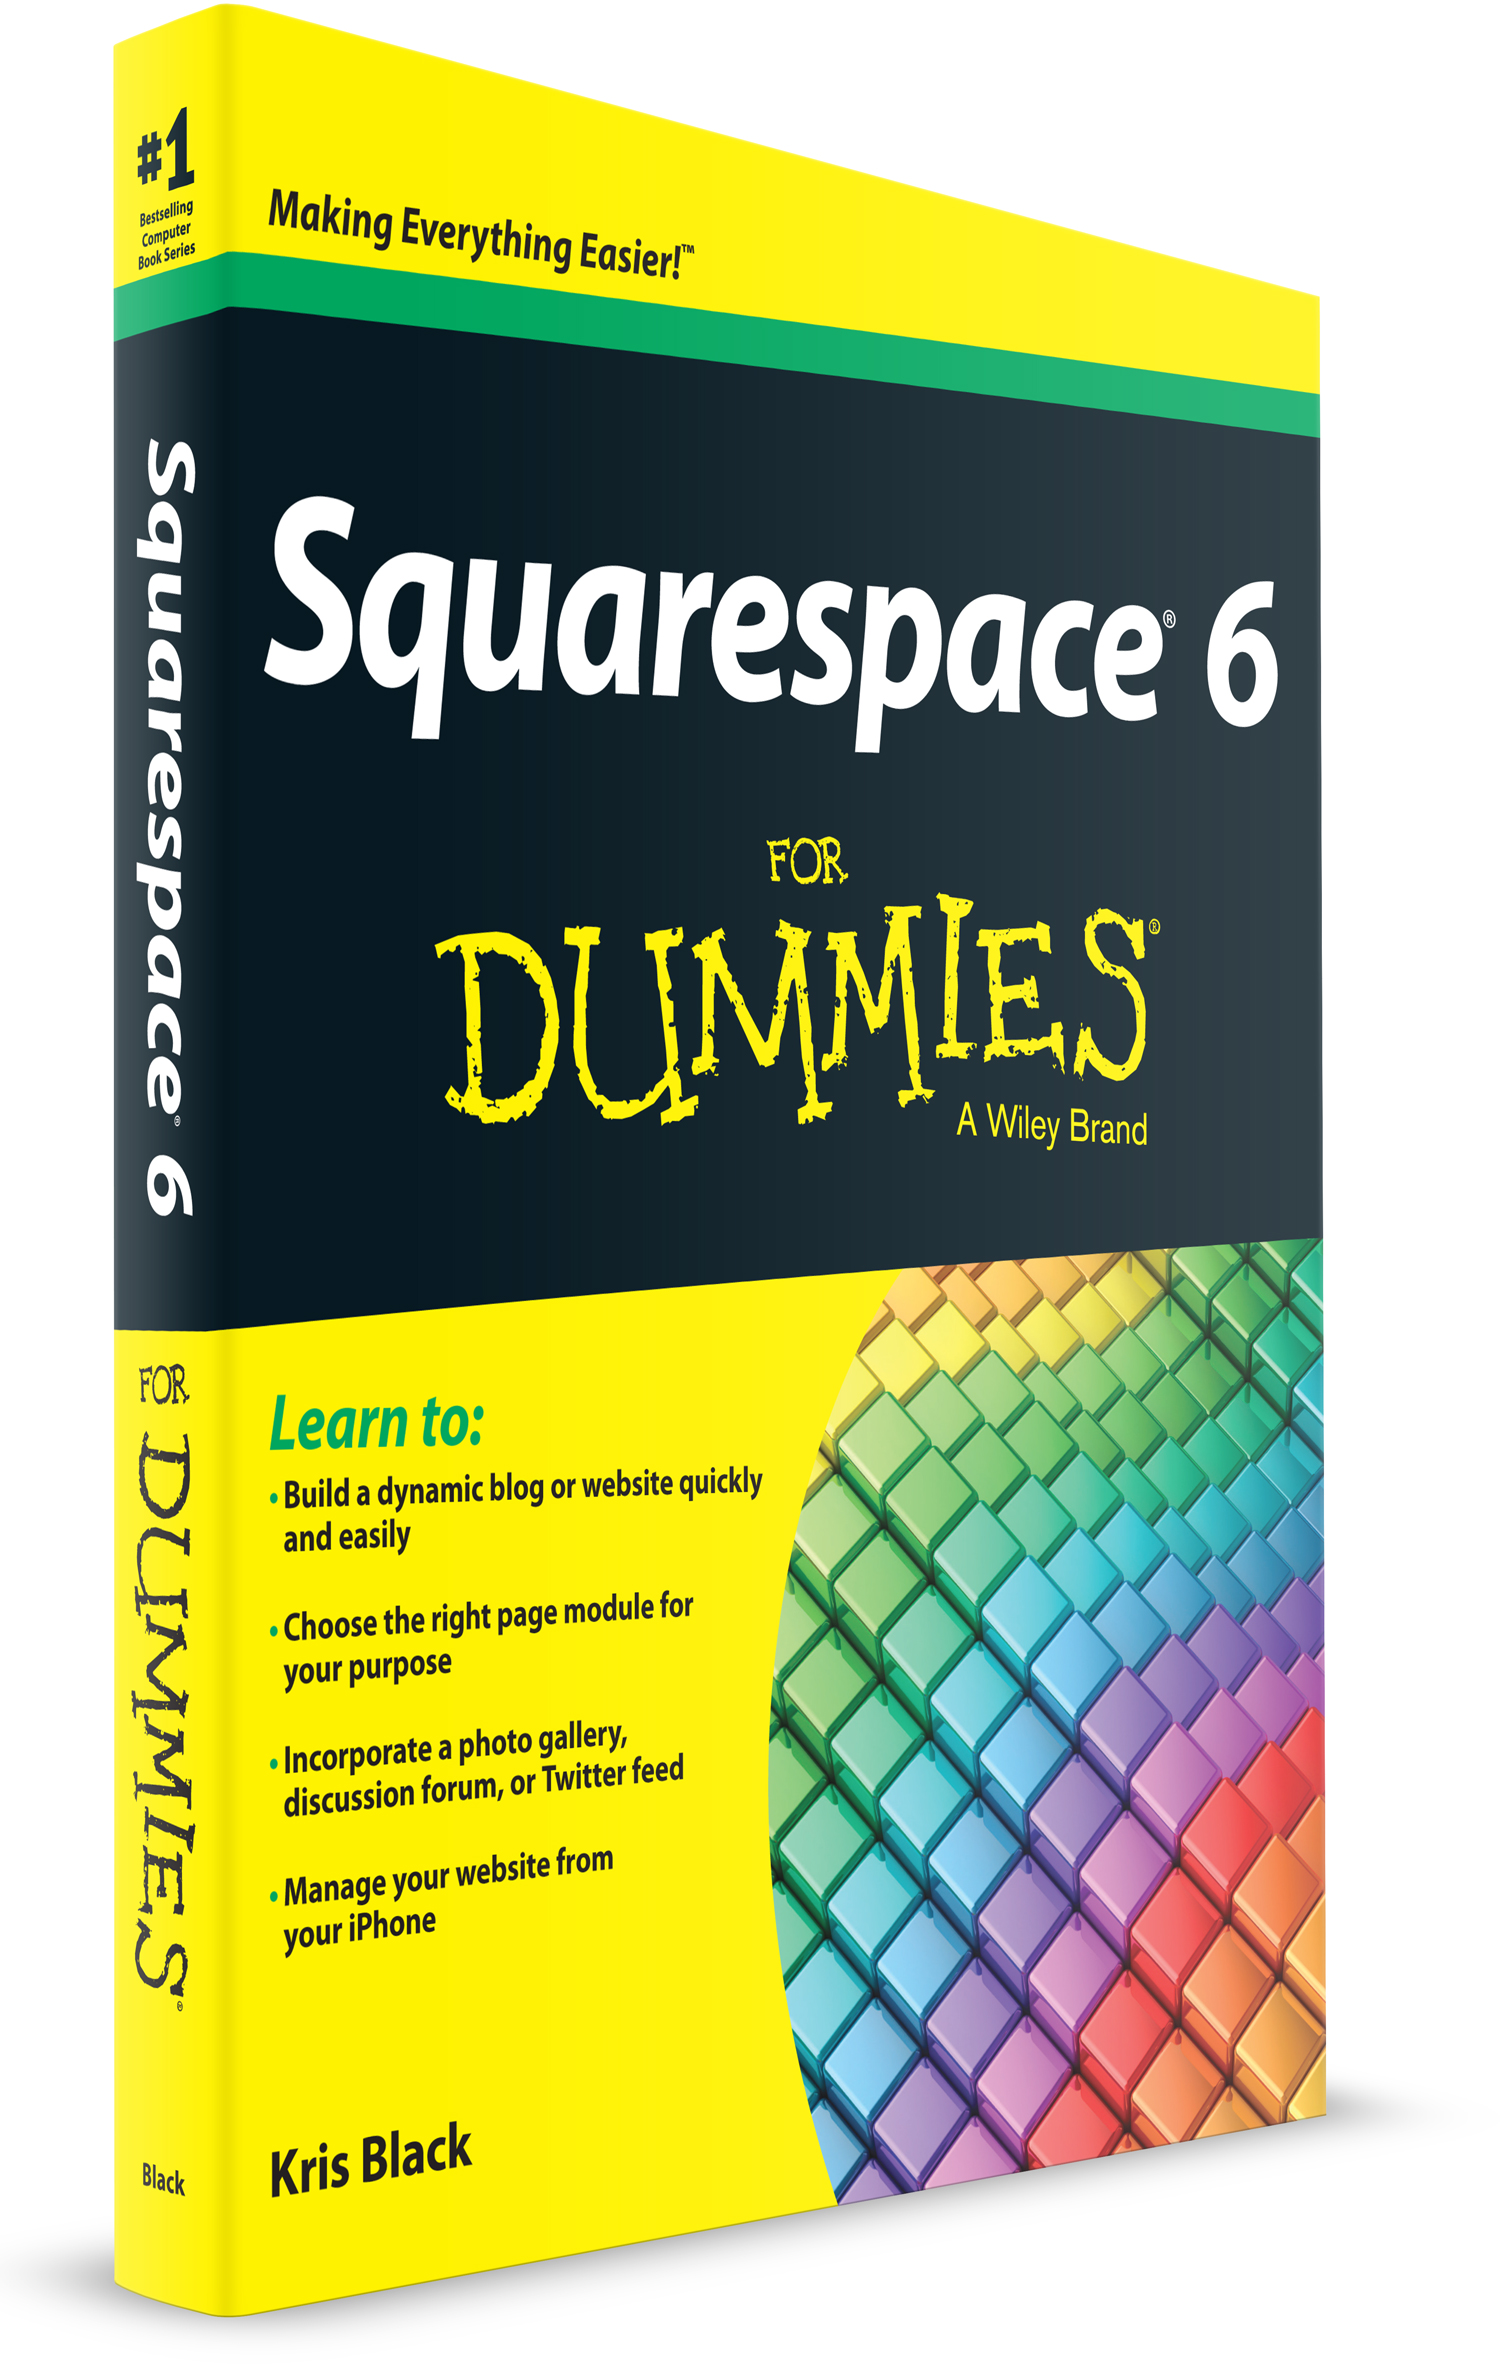 New Edition Available - The latest edition, Squarespace 6 For Dummies, is available.